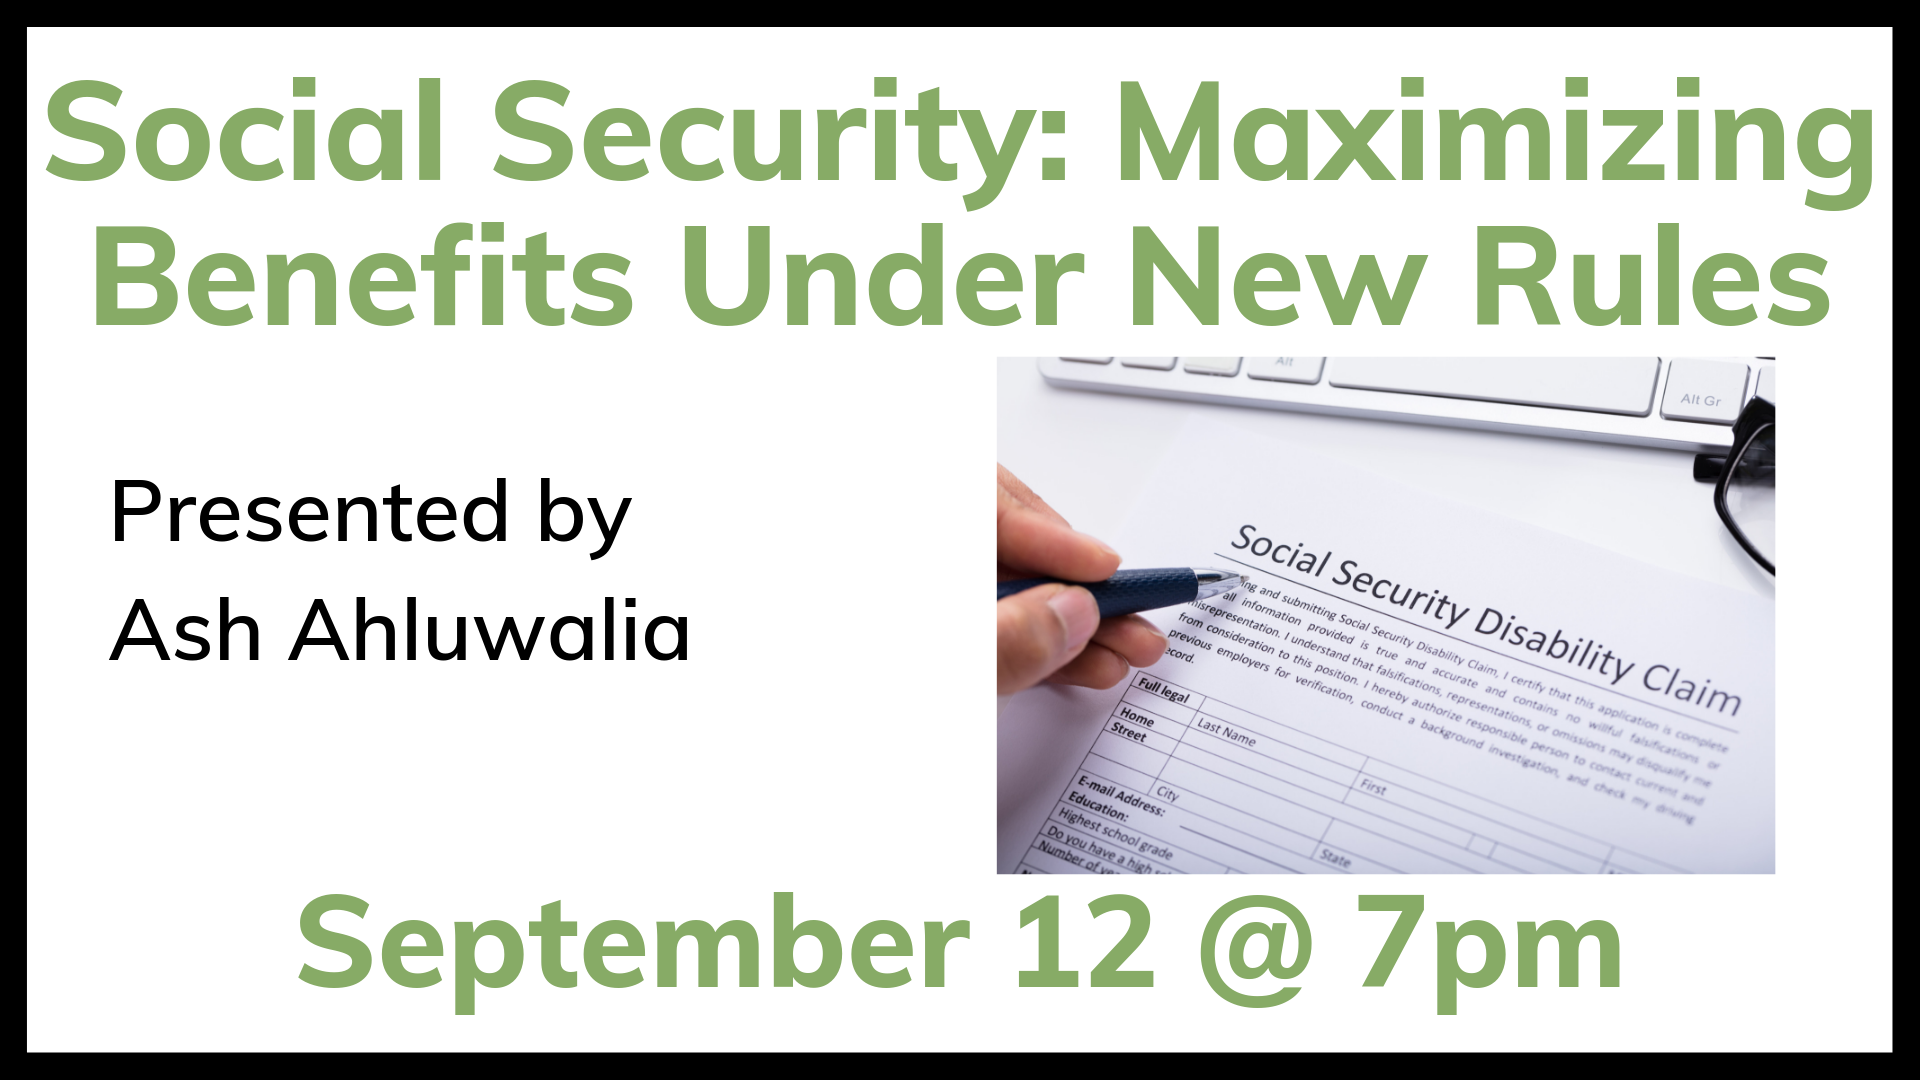 Social Security: Maximizing Benefits Under the New Rules